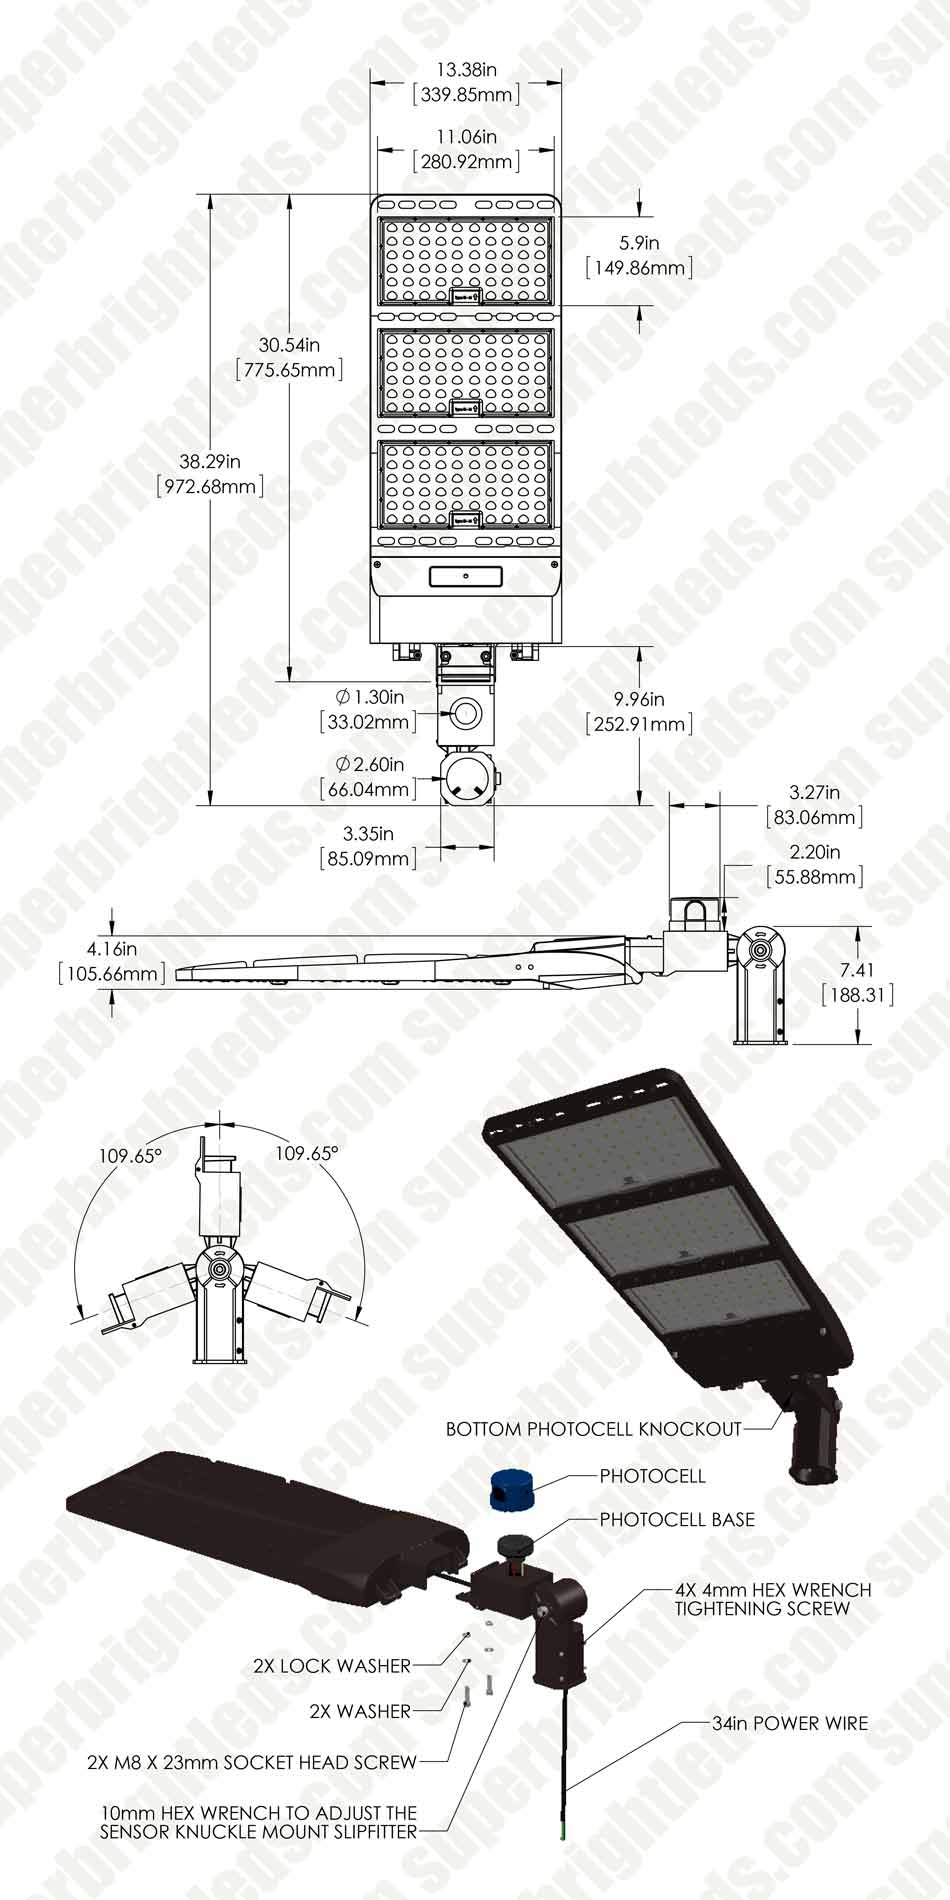 Street Light Photocell Wiring Diagram View Diagram